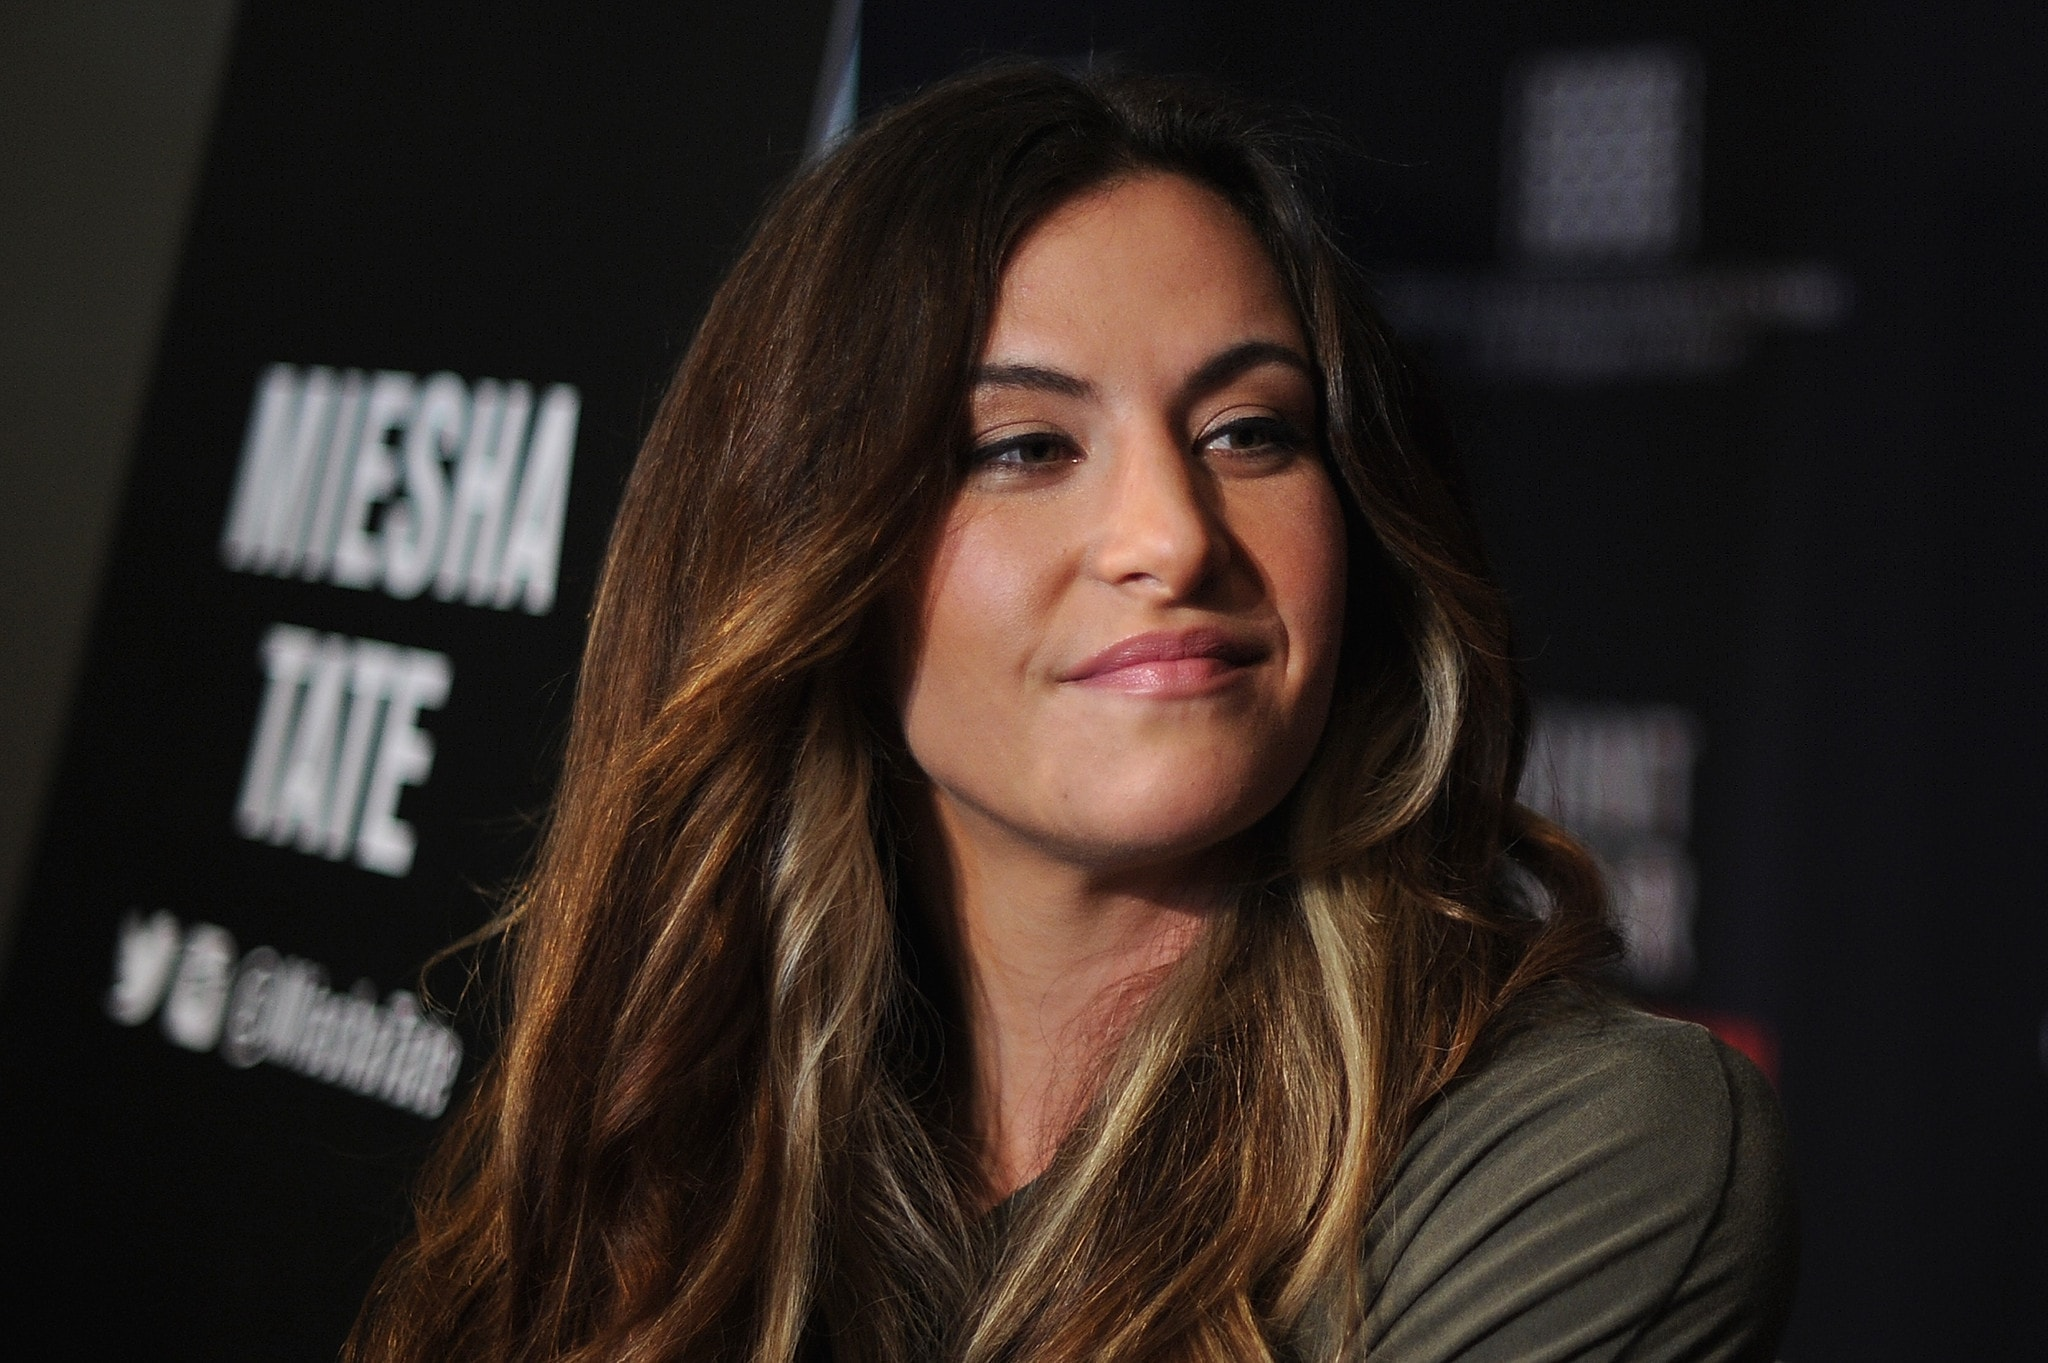 Miesha Tate widescreen wallpapers